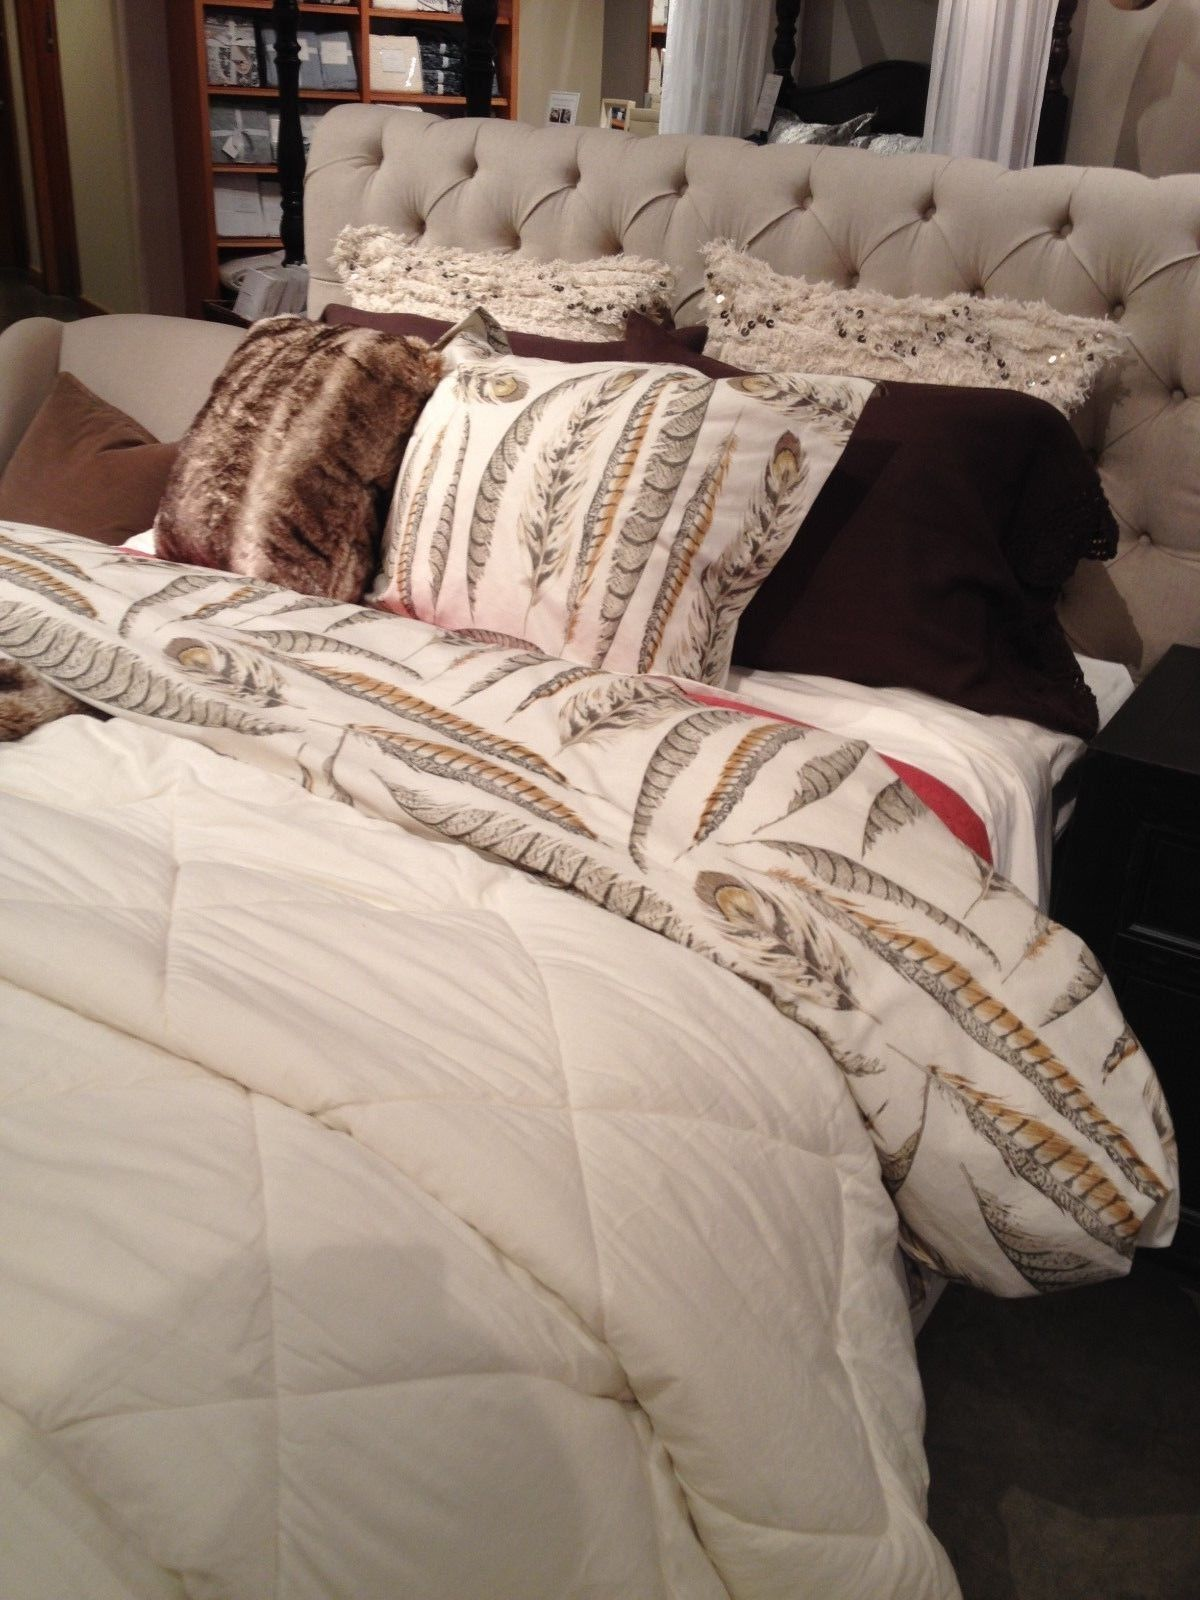 season quilt sale super queen to down and single white all choose king size the p hungarian each anti best expert uk duck comforter seasons goose tog duvets full company how buy grey from kingsize feather winter of duvet range reviews allergy for